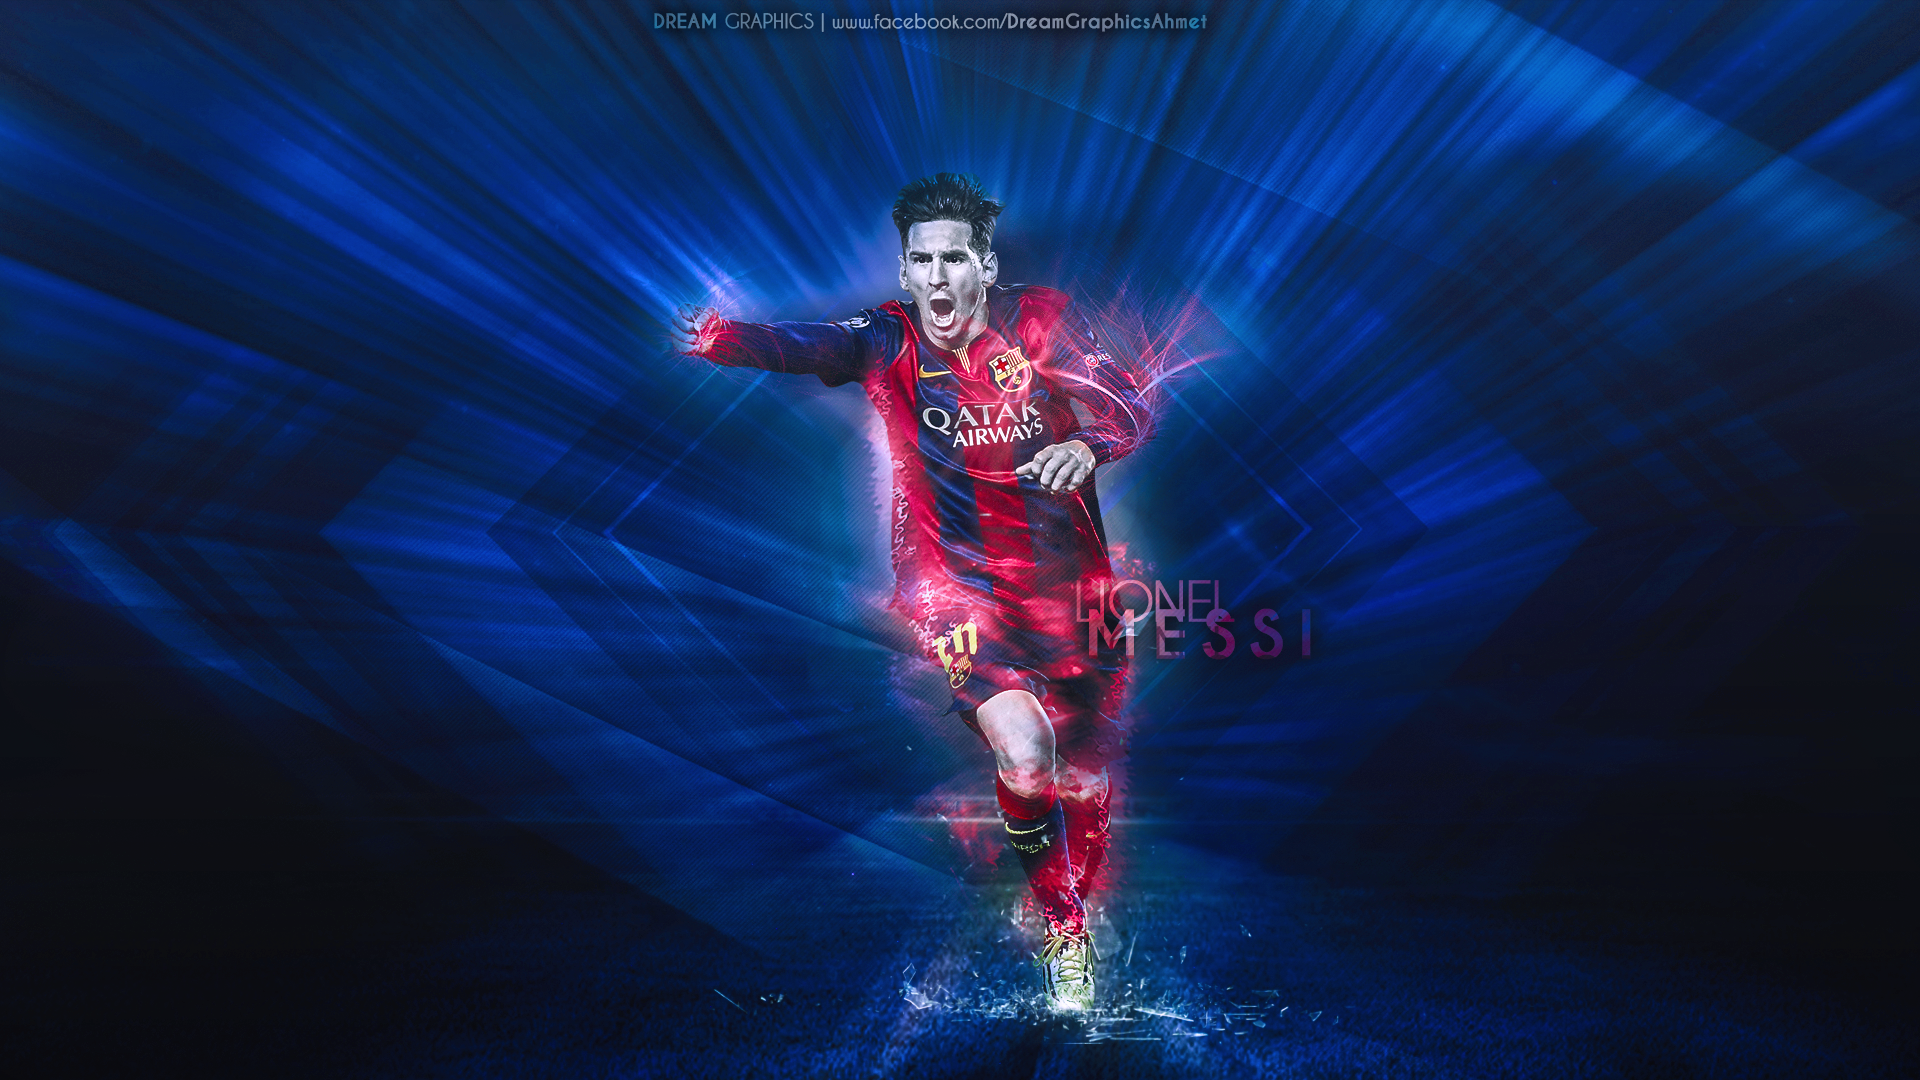 Leo Messi Barcelona 2015 By Dreamgraphicss On DeviantArt